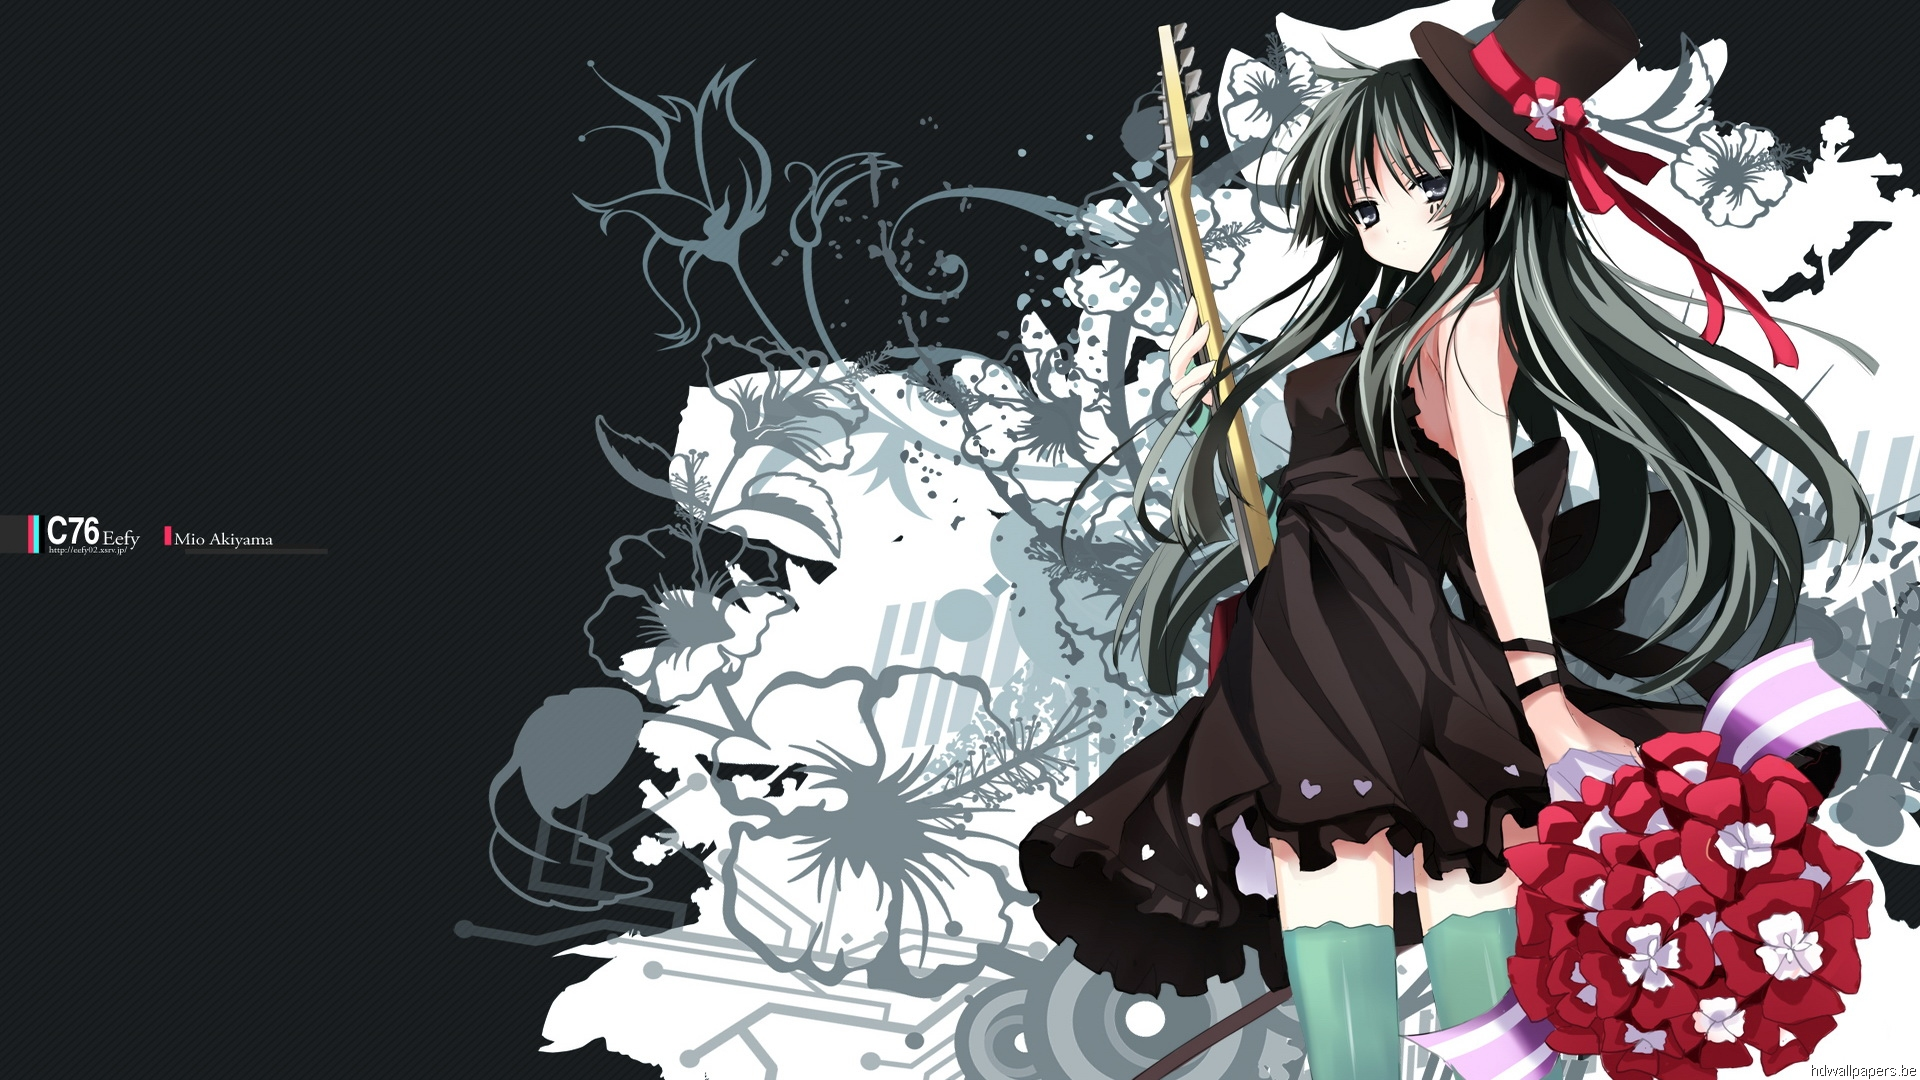 Anime Wallpapers HD Anime Wallpapers Desktop Anime Wallpaper HD 22 1920x1080